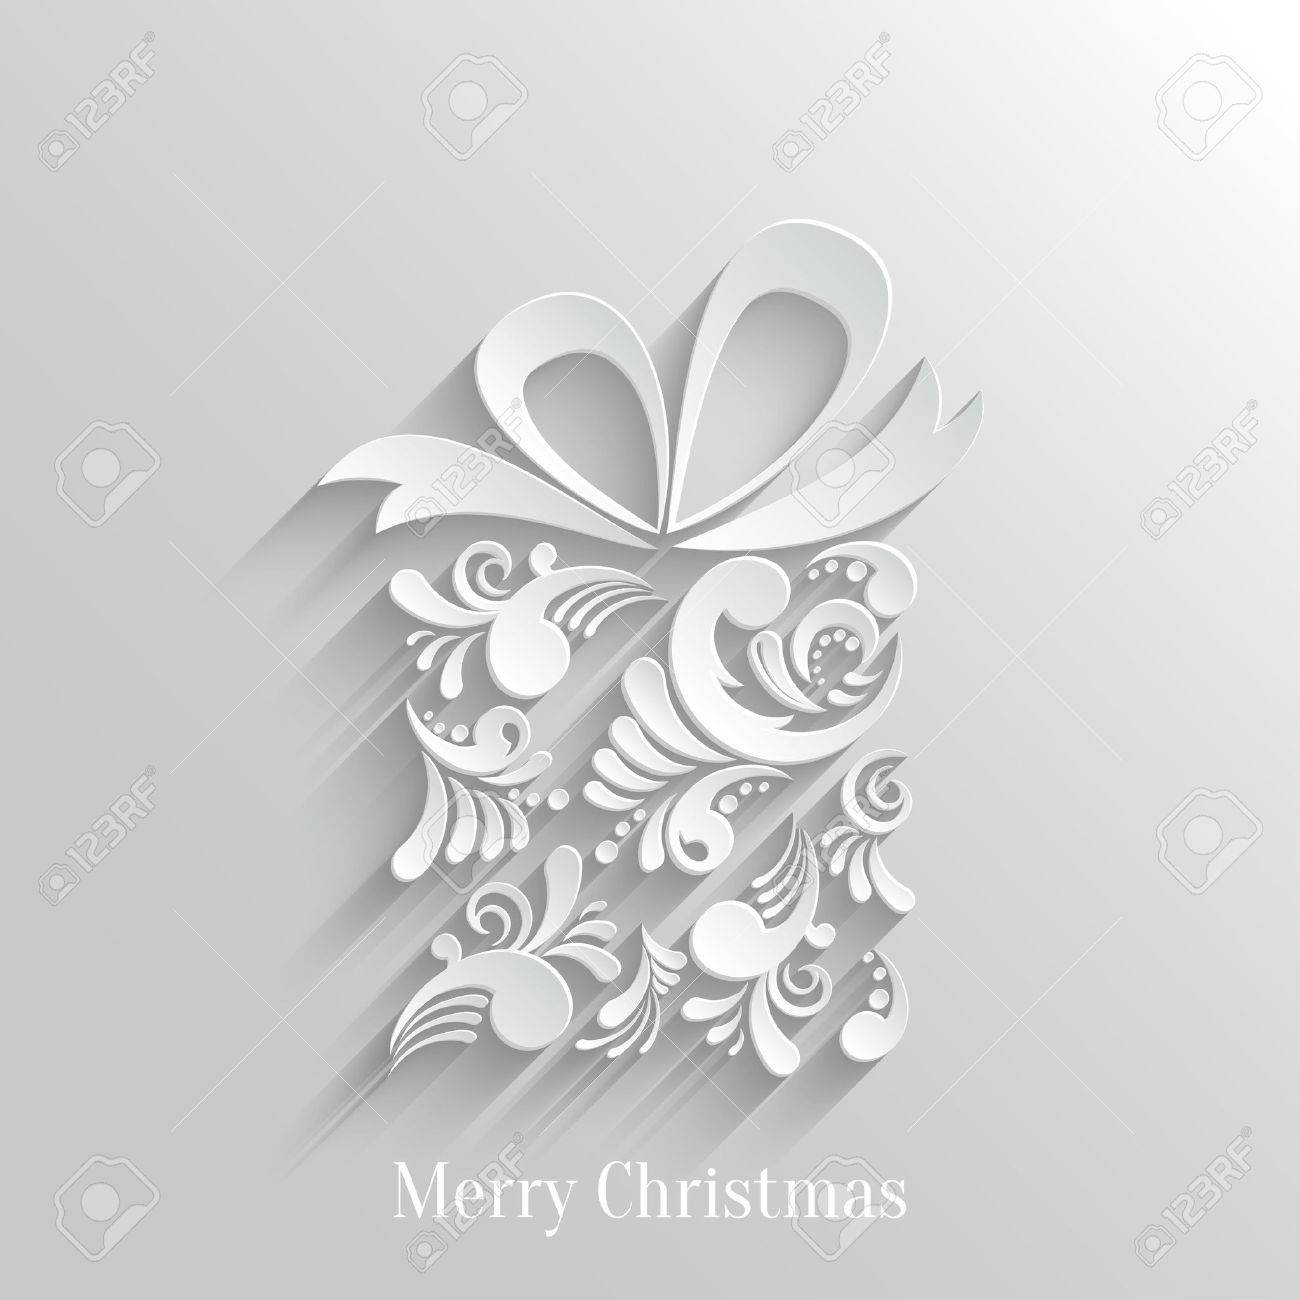 absrtact floral christmas gift background trendy design template absrtact floral christmas gift background trendy design template stock vector 24253657